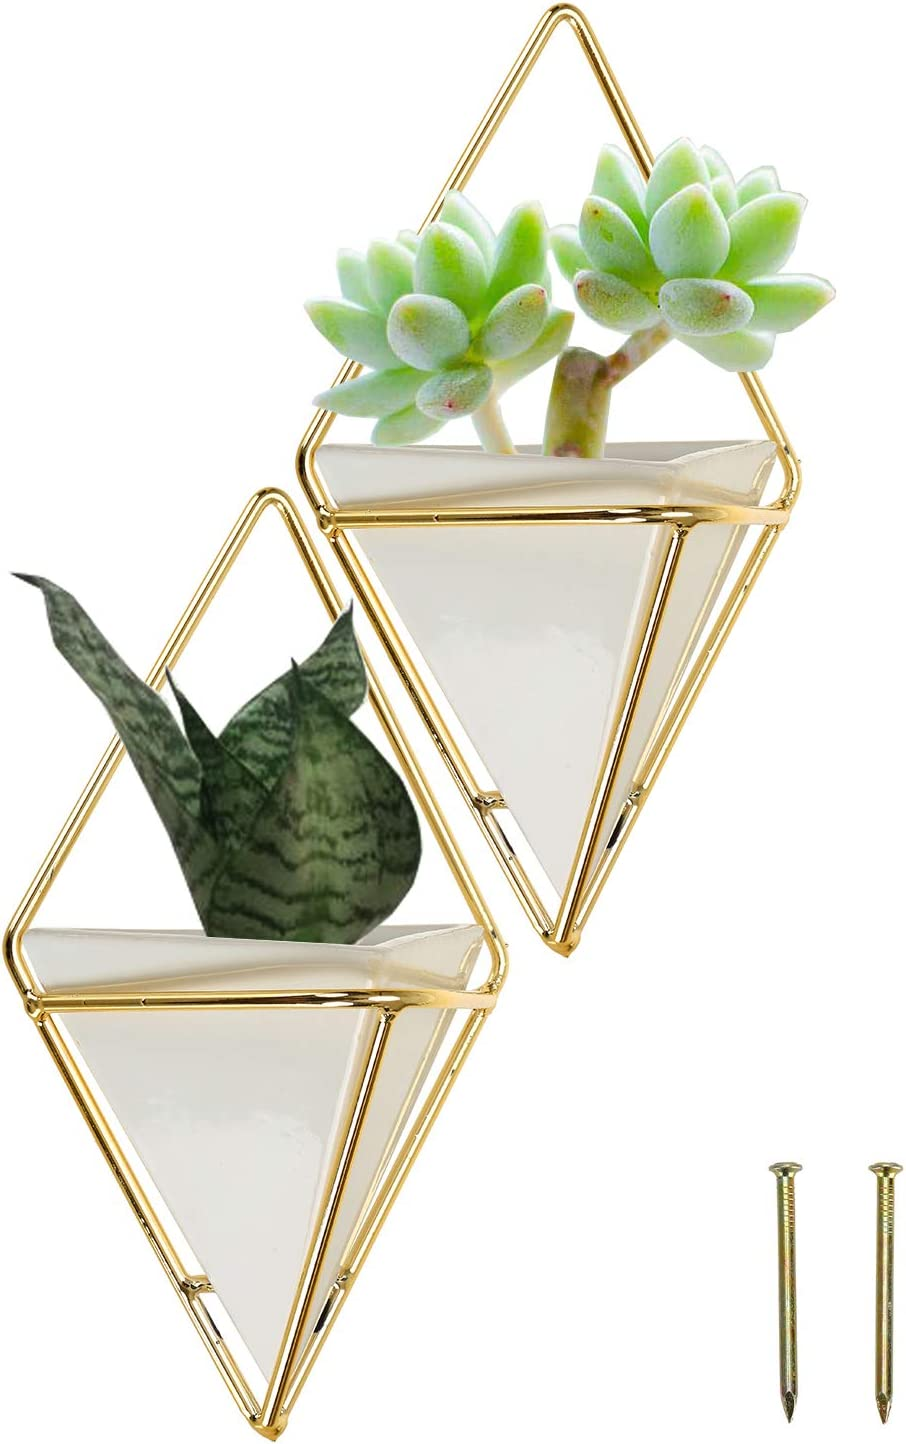 Fasmov 2 Pack Small Hanging Planter Vase & Geometric Wall Decor Container Geometric Wall Planter Container for Succulent Plants, Air Plant, Mini Cactus, Faux Plants and More Home Décor